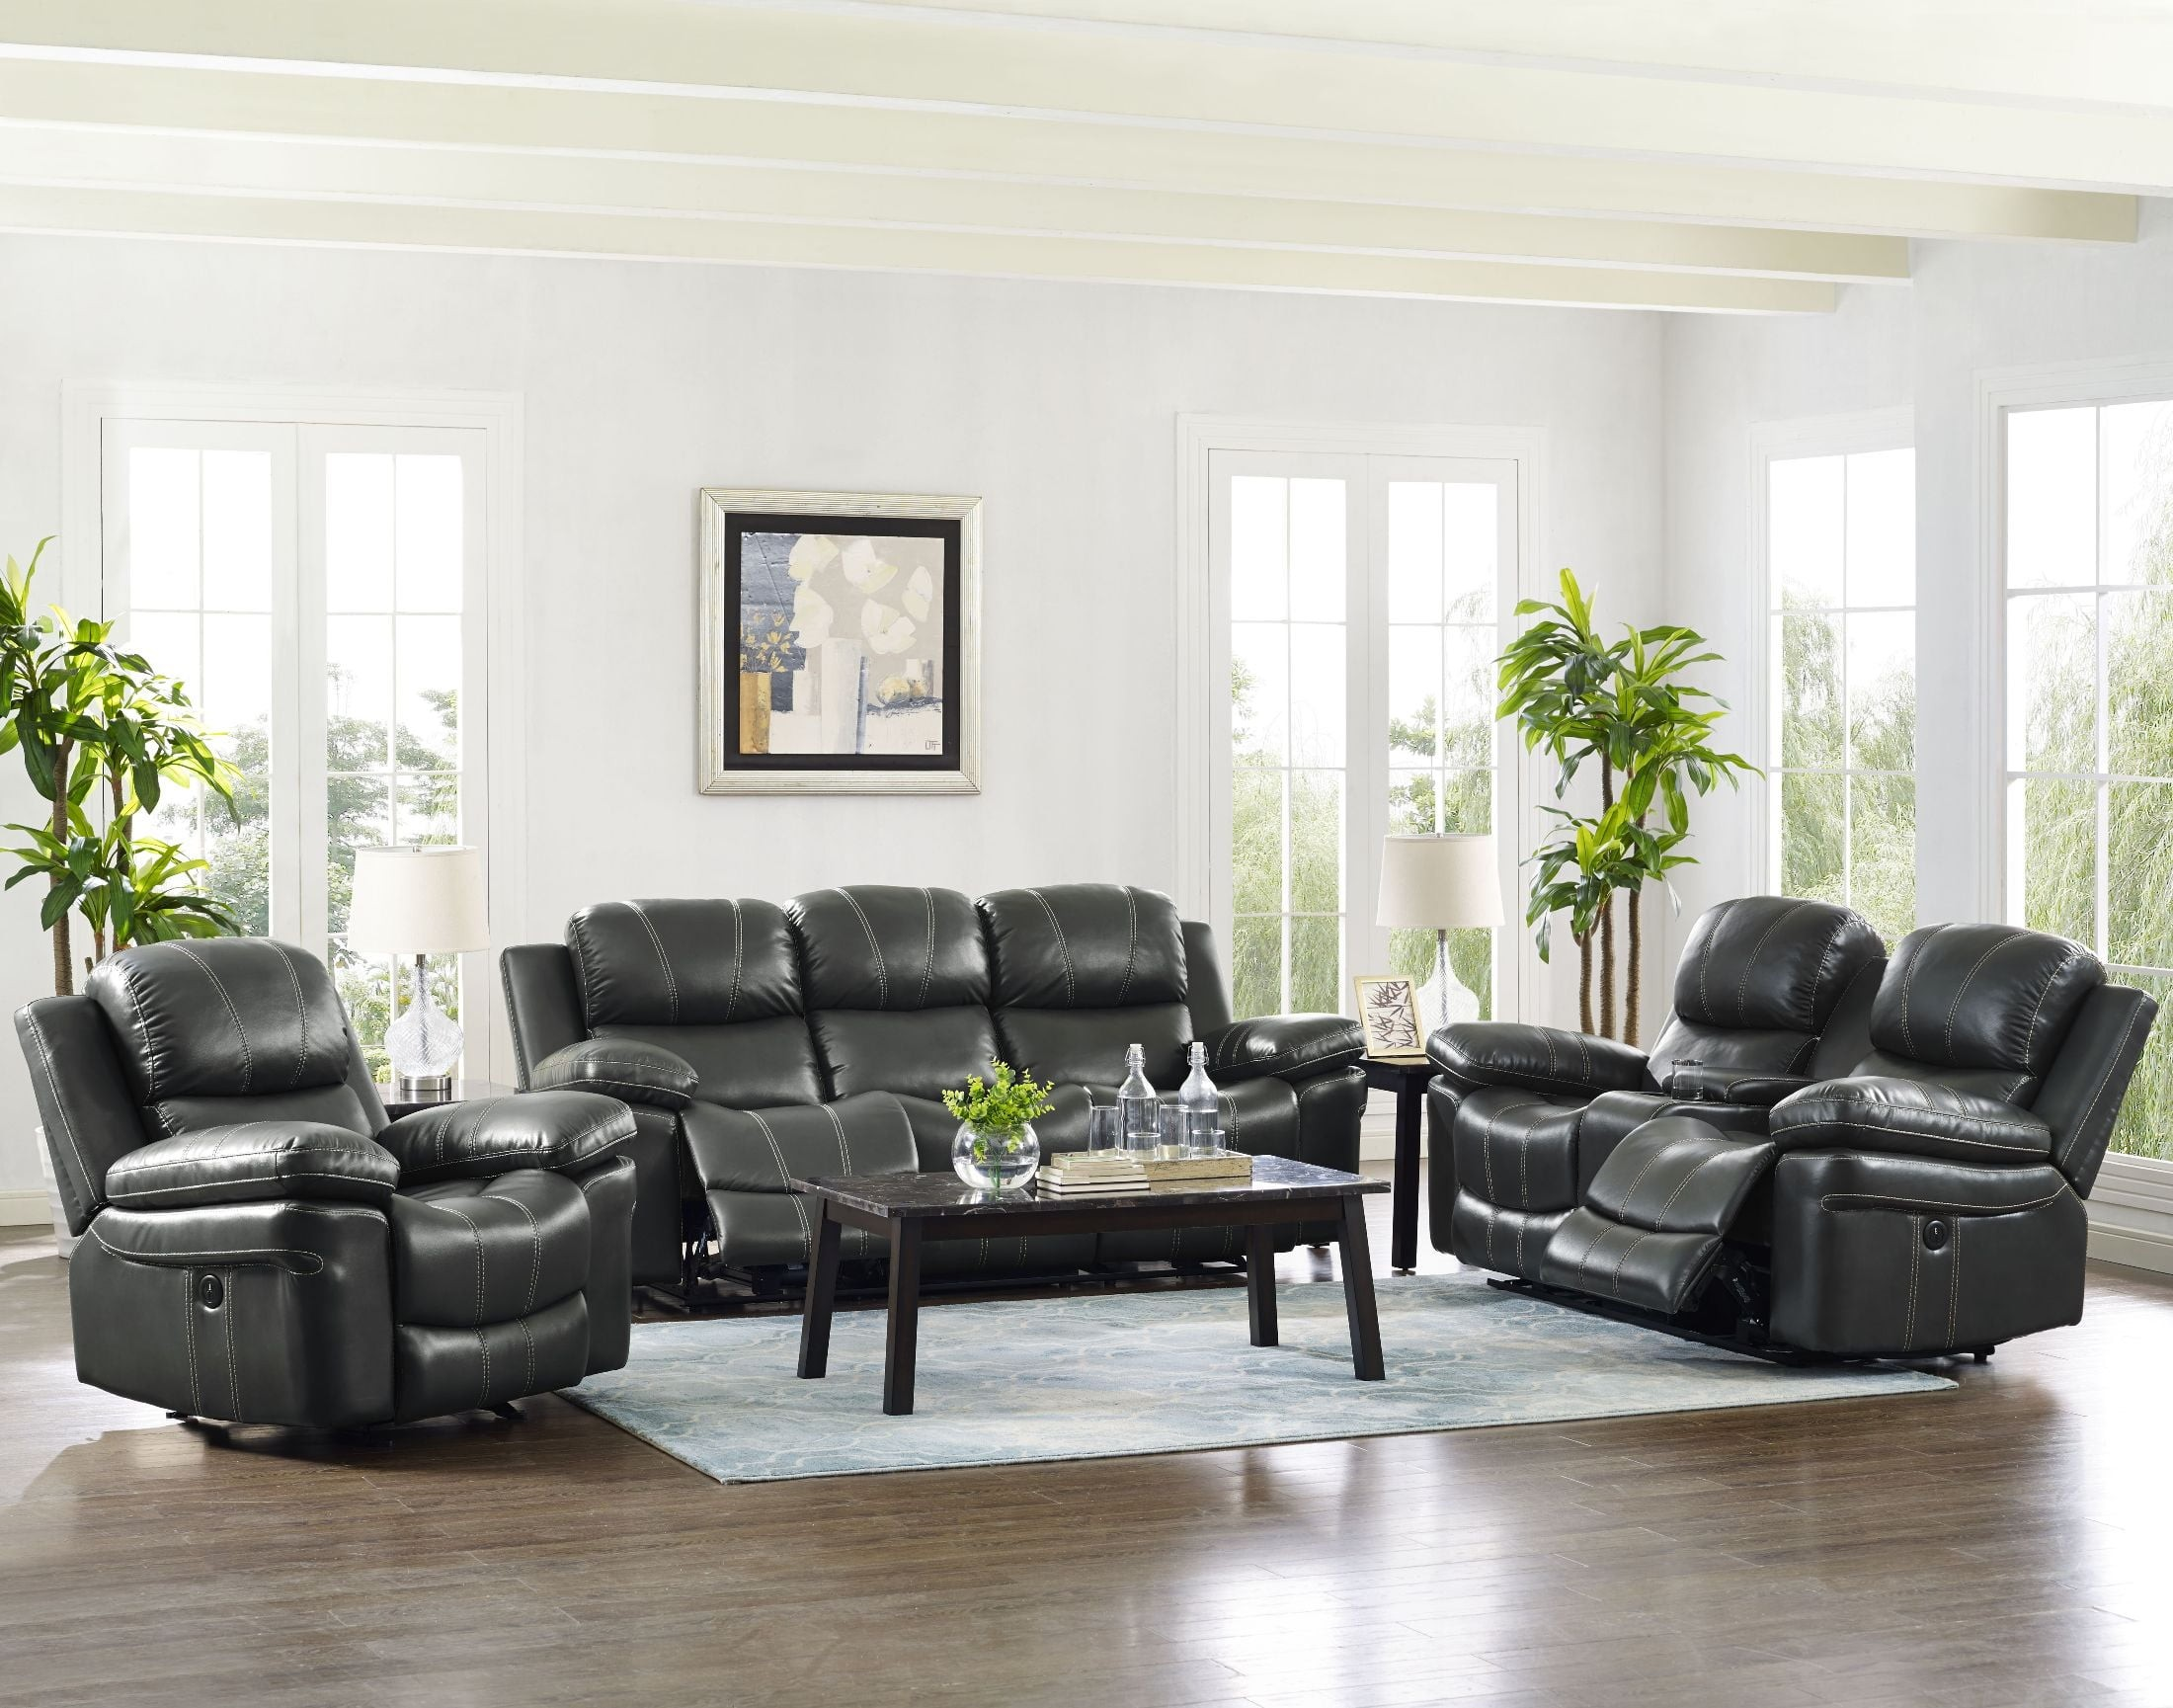 Cadence Delta Gray Dual Reclining Living Room Set from New Classic ...